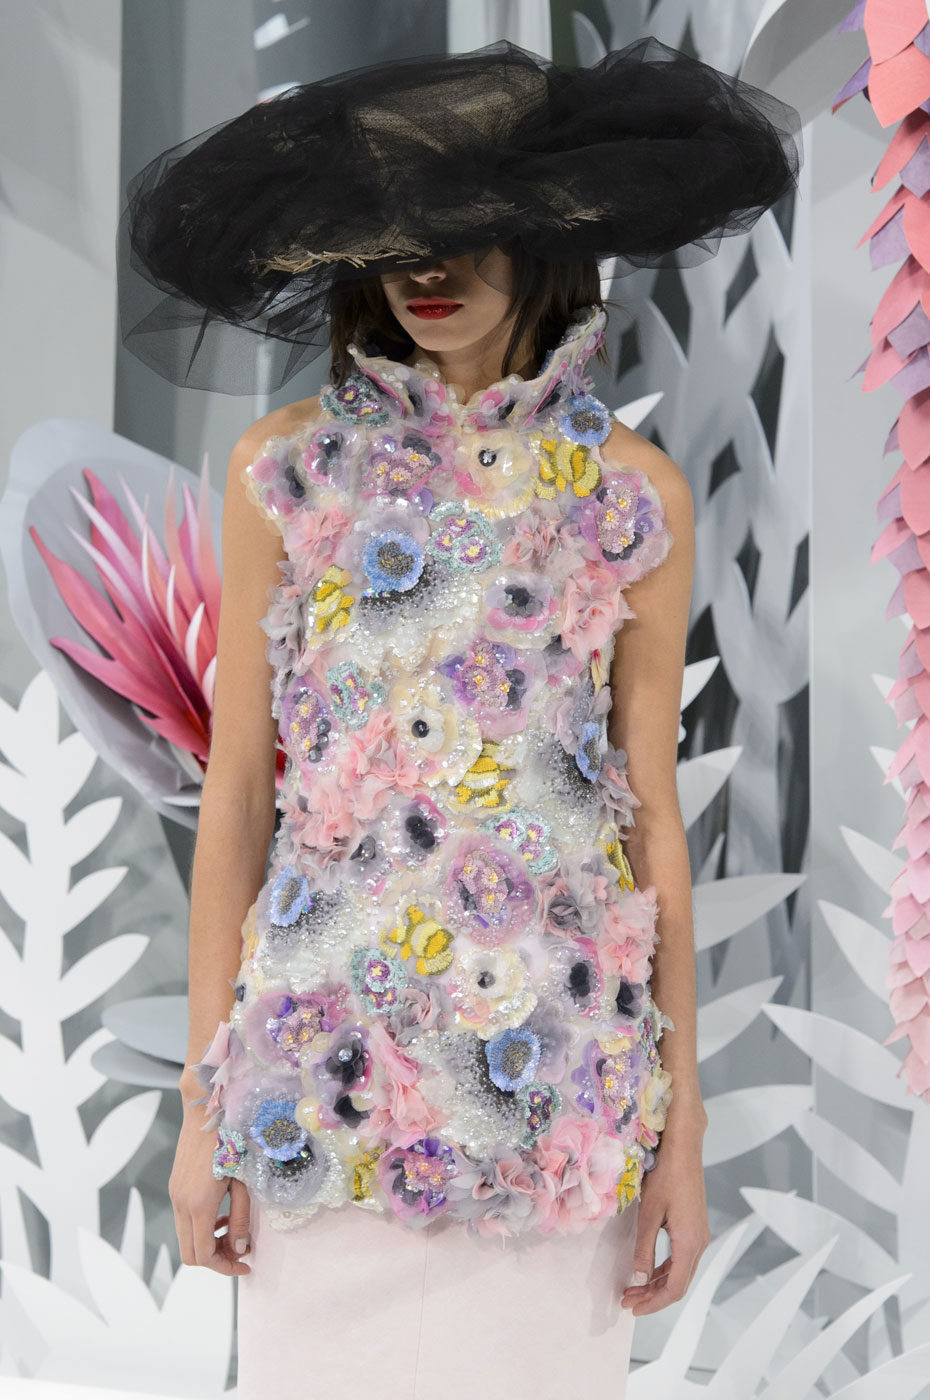 Chanel-fashion-runway-show-haute-couture-paris-spring-summer-2015-the-impression-128